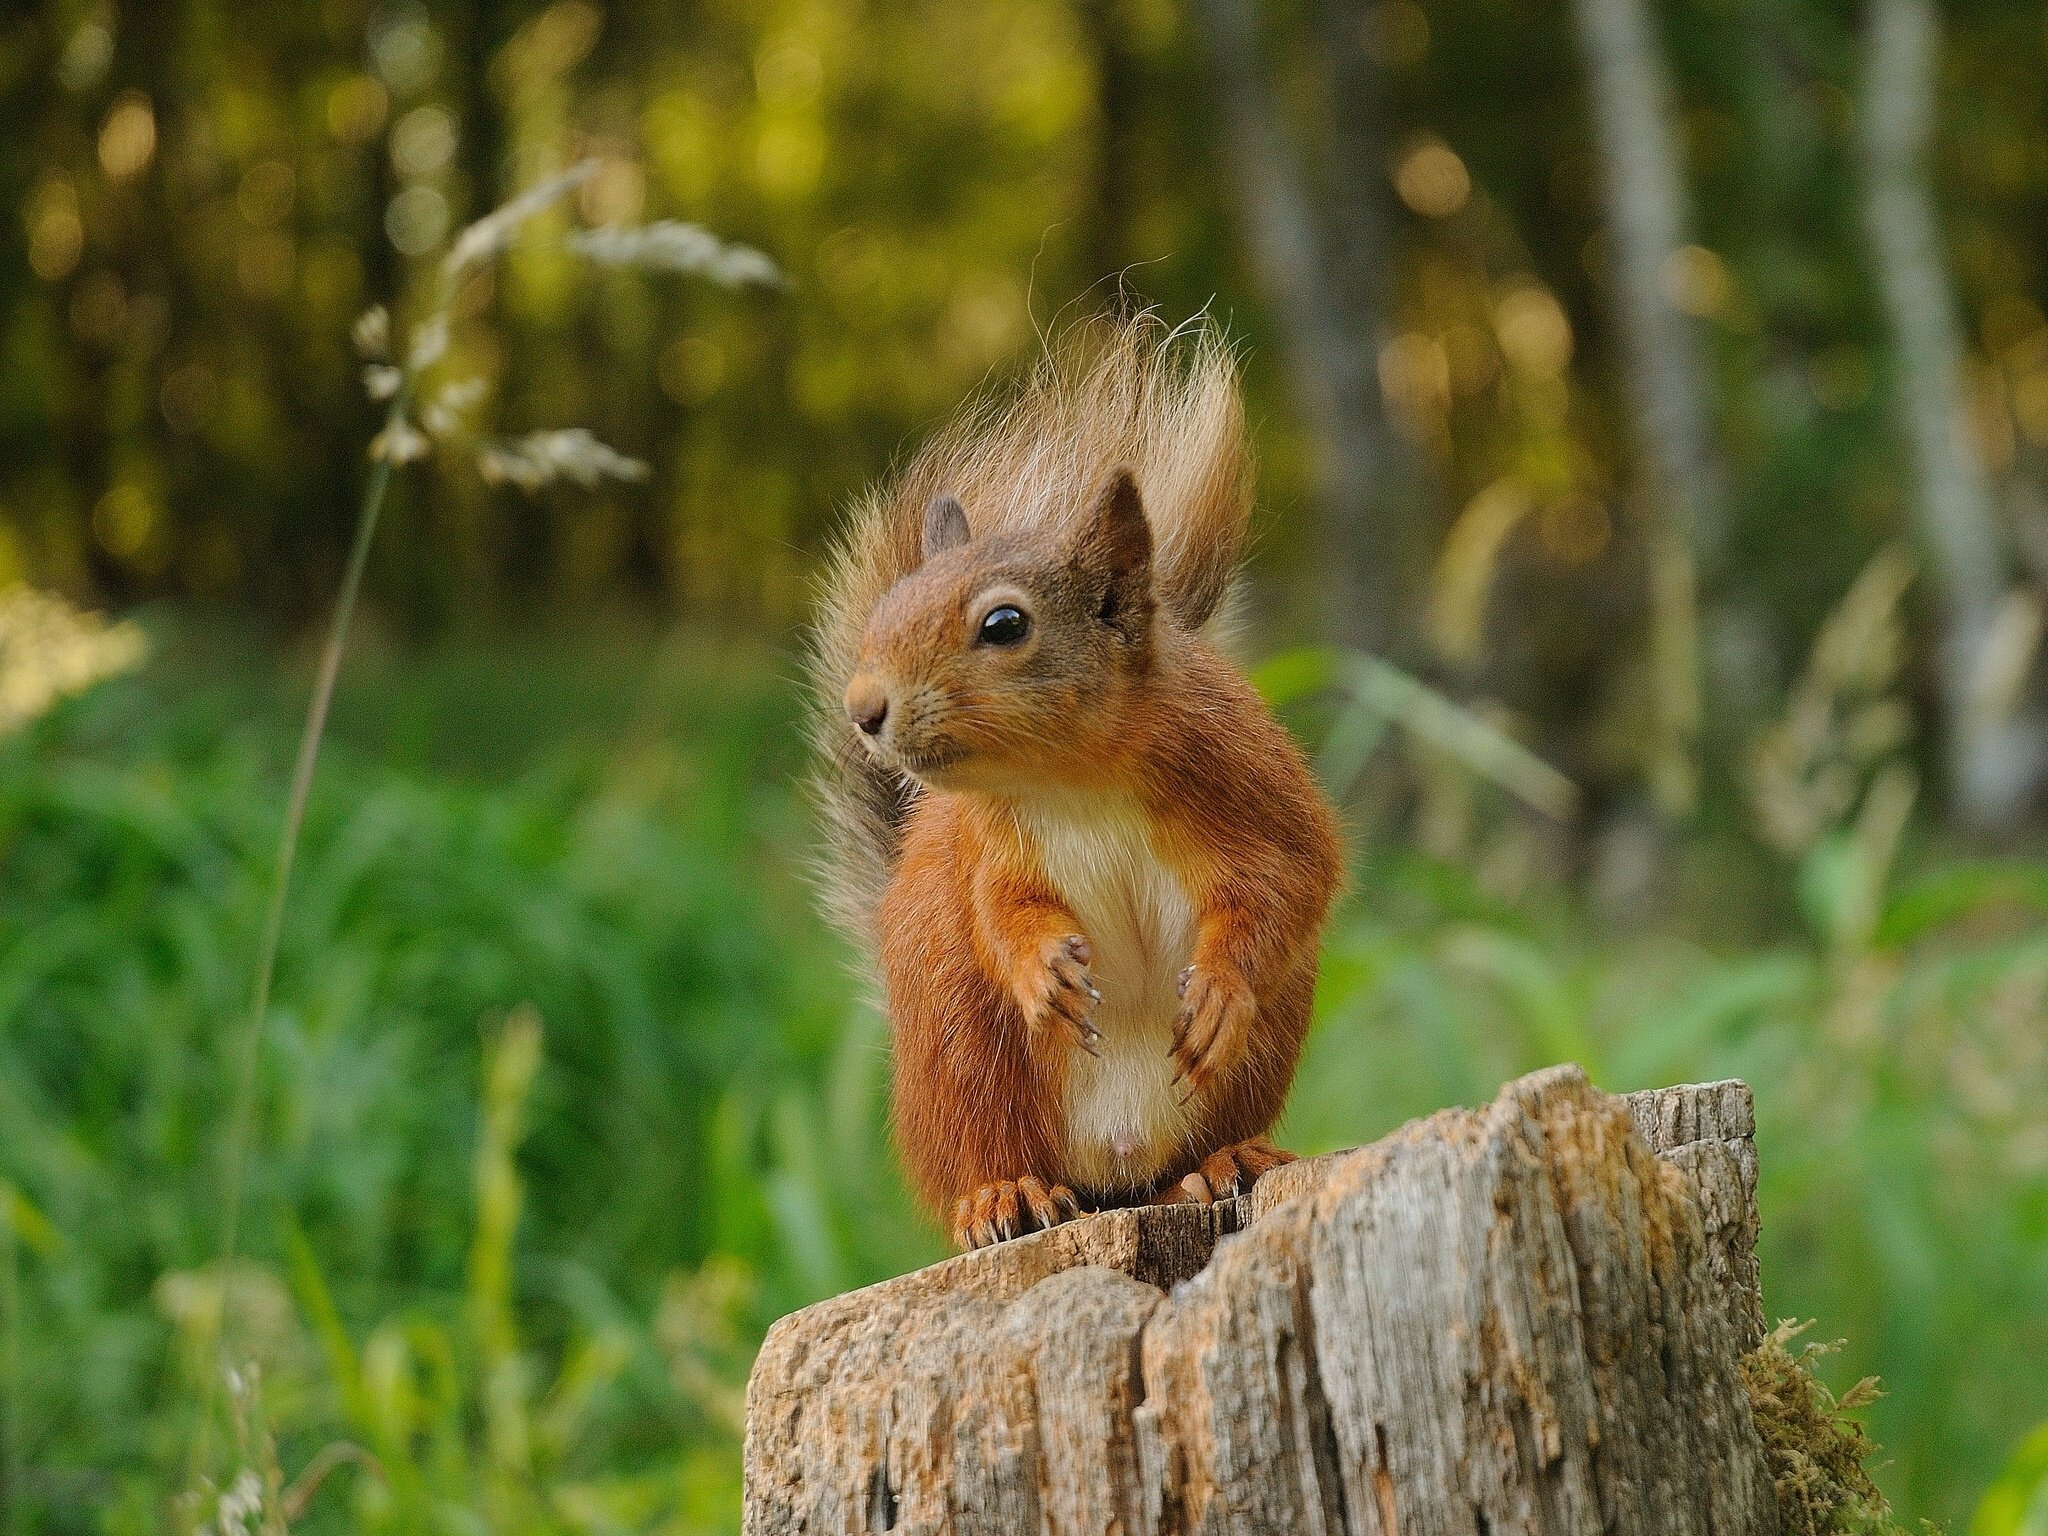 Download hd 2048x1536 Squirrel PC background ID:311476 for free